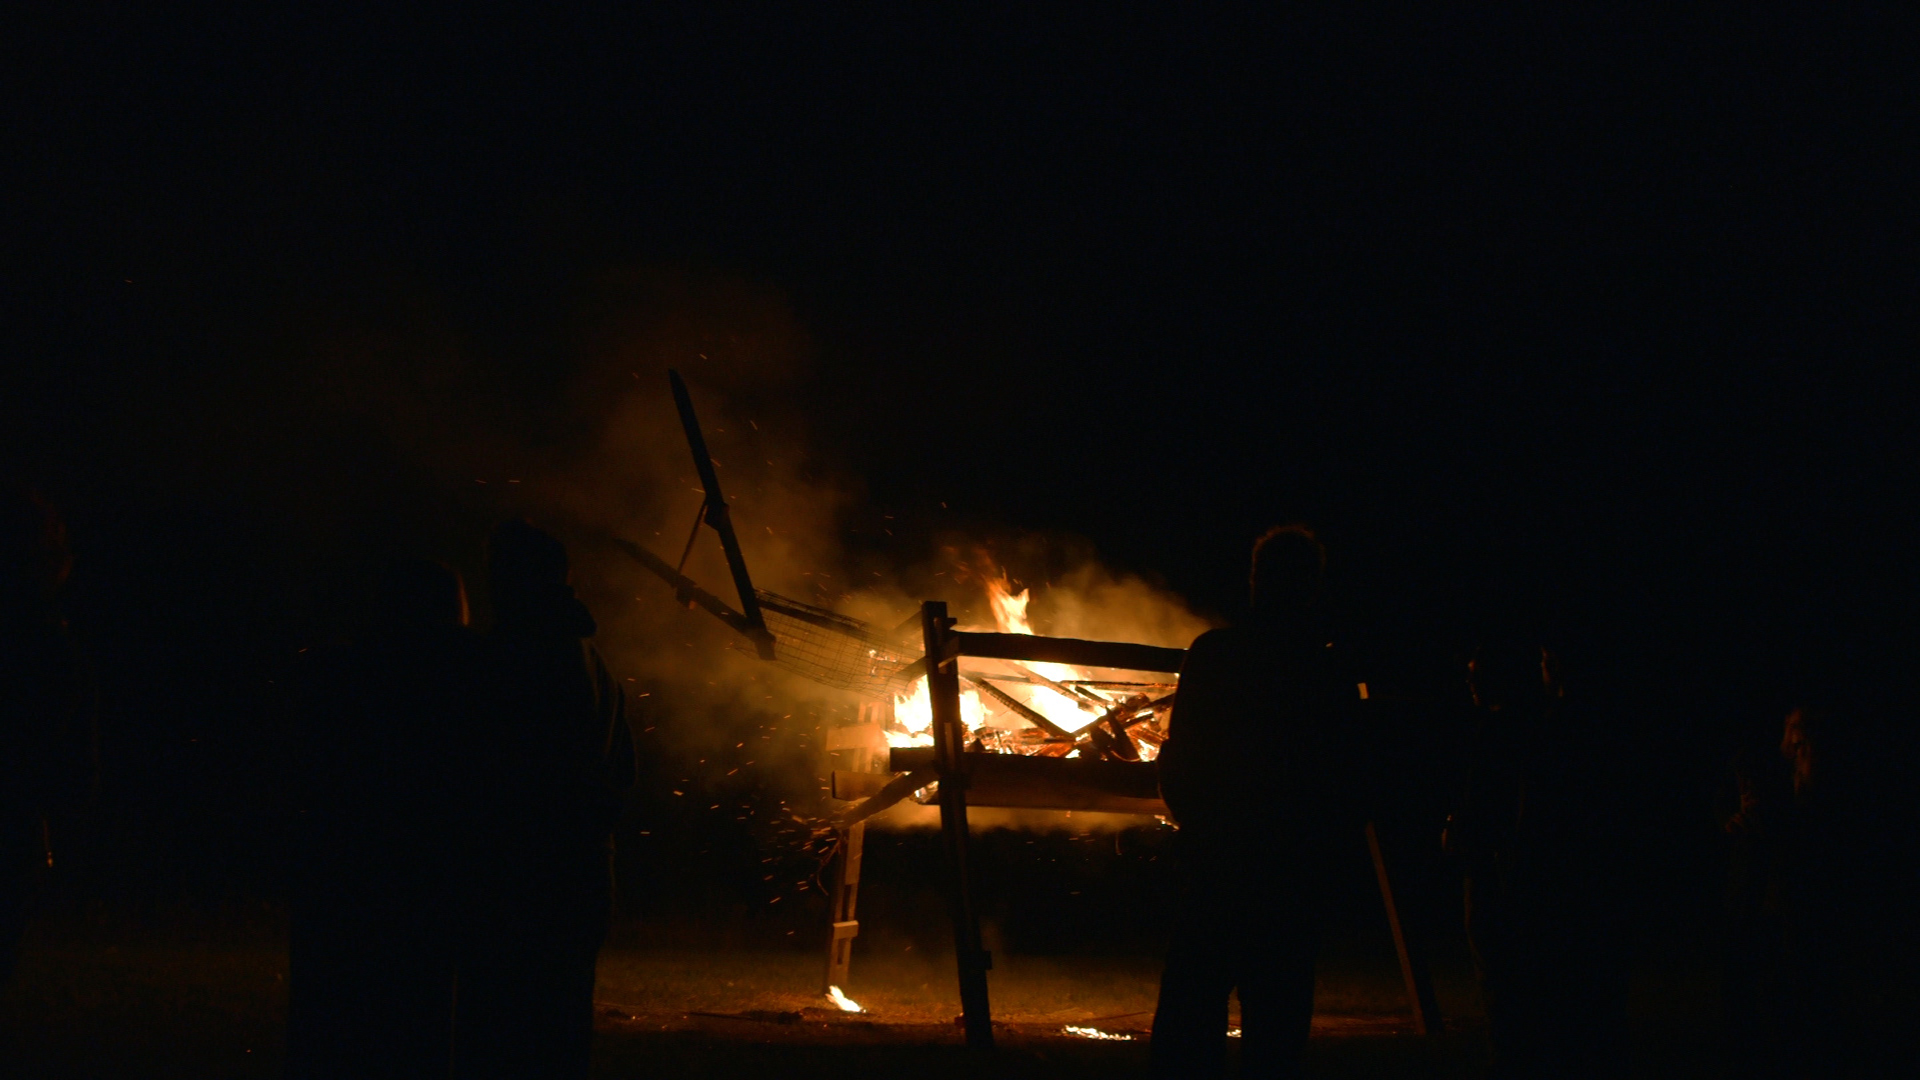 The giant wooden goat burns at Headwaters Farm as a tribute to the end of growing season and a successful harvest.